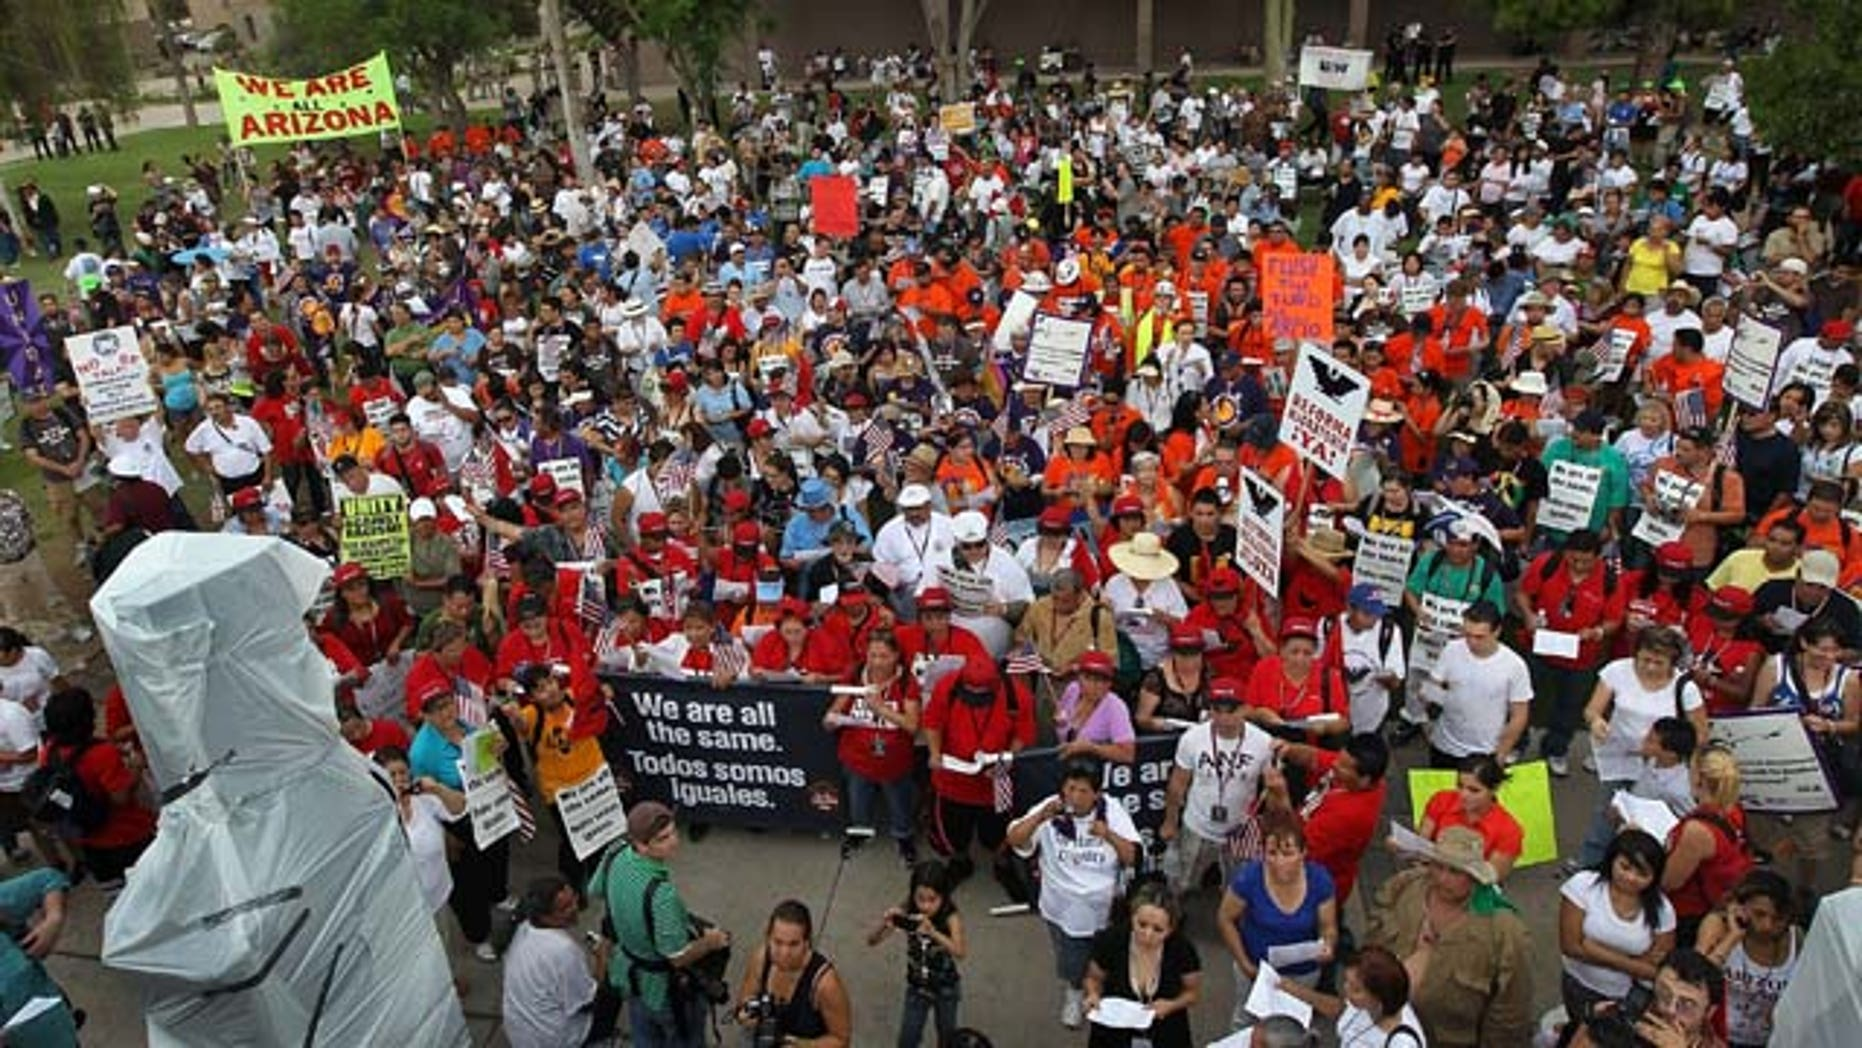 PHOENIX - JULY 29:  Protesters from California join Arizonans at the state capitol building for a demonstration against Arizona's immigration enforcement law SB 1070 on July 29, 2010 in Phoenix, Arizona. The Californians came in solidarity with Arizonan opponents of the law, which many people saw as biased against Latinos. U.S. District Court Judge Susan Bolton Wednesday suspended several controversial provisions of the law, which went into effect today.  (Photo by John Moore/Getty Images)